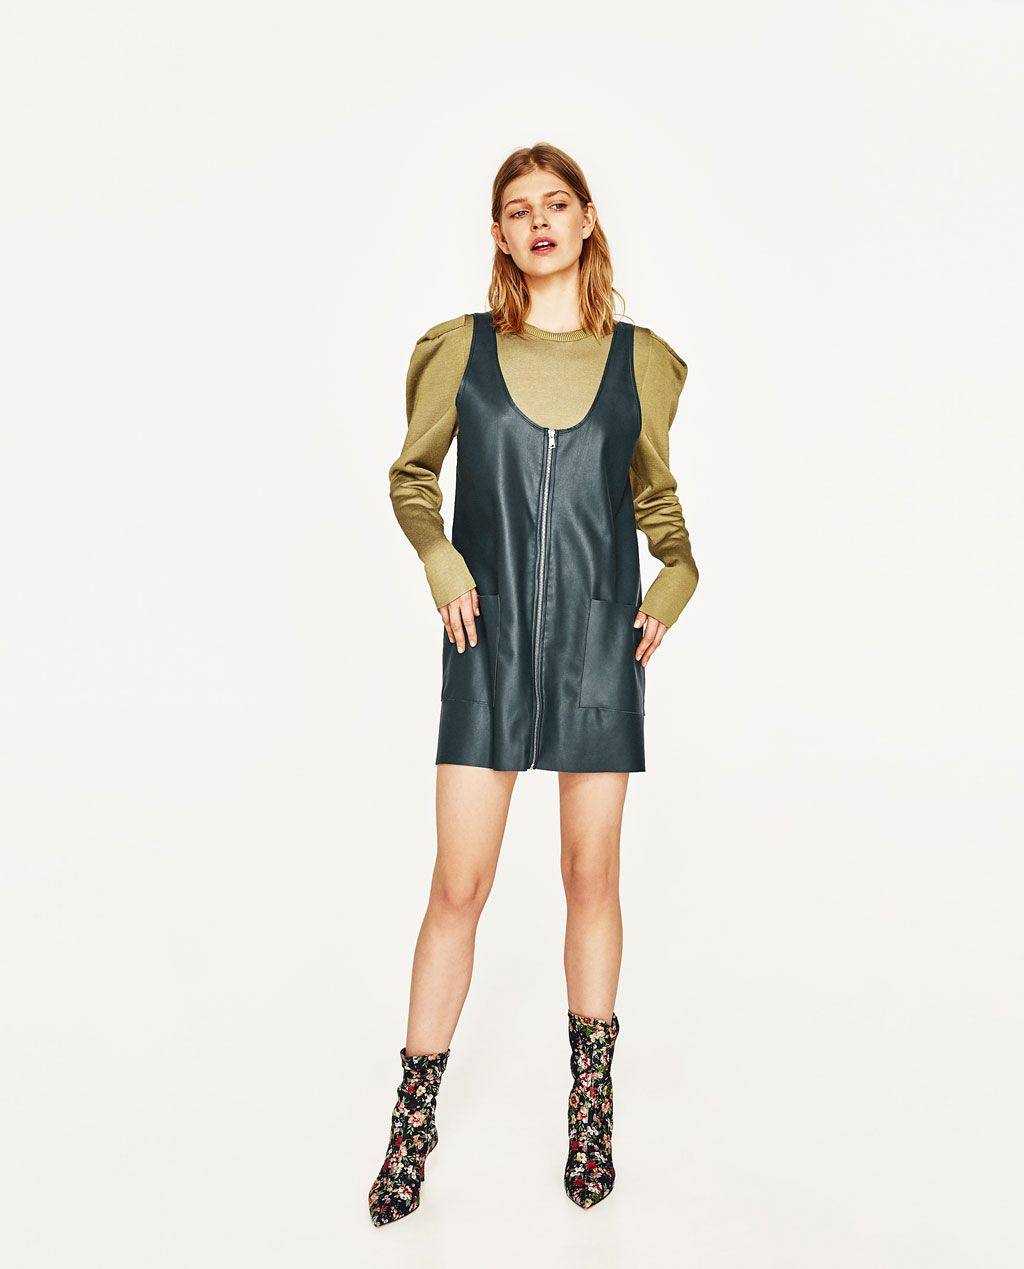 6574f0f7c2b Image 1 of FAUX LEATHER PINAFORE DRESS WITH ZIP from Zara